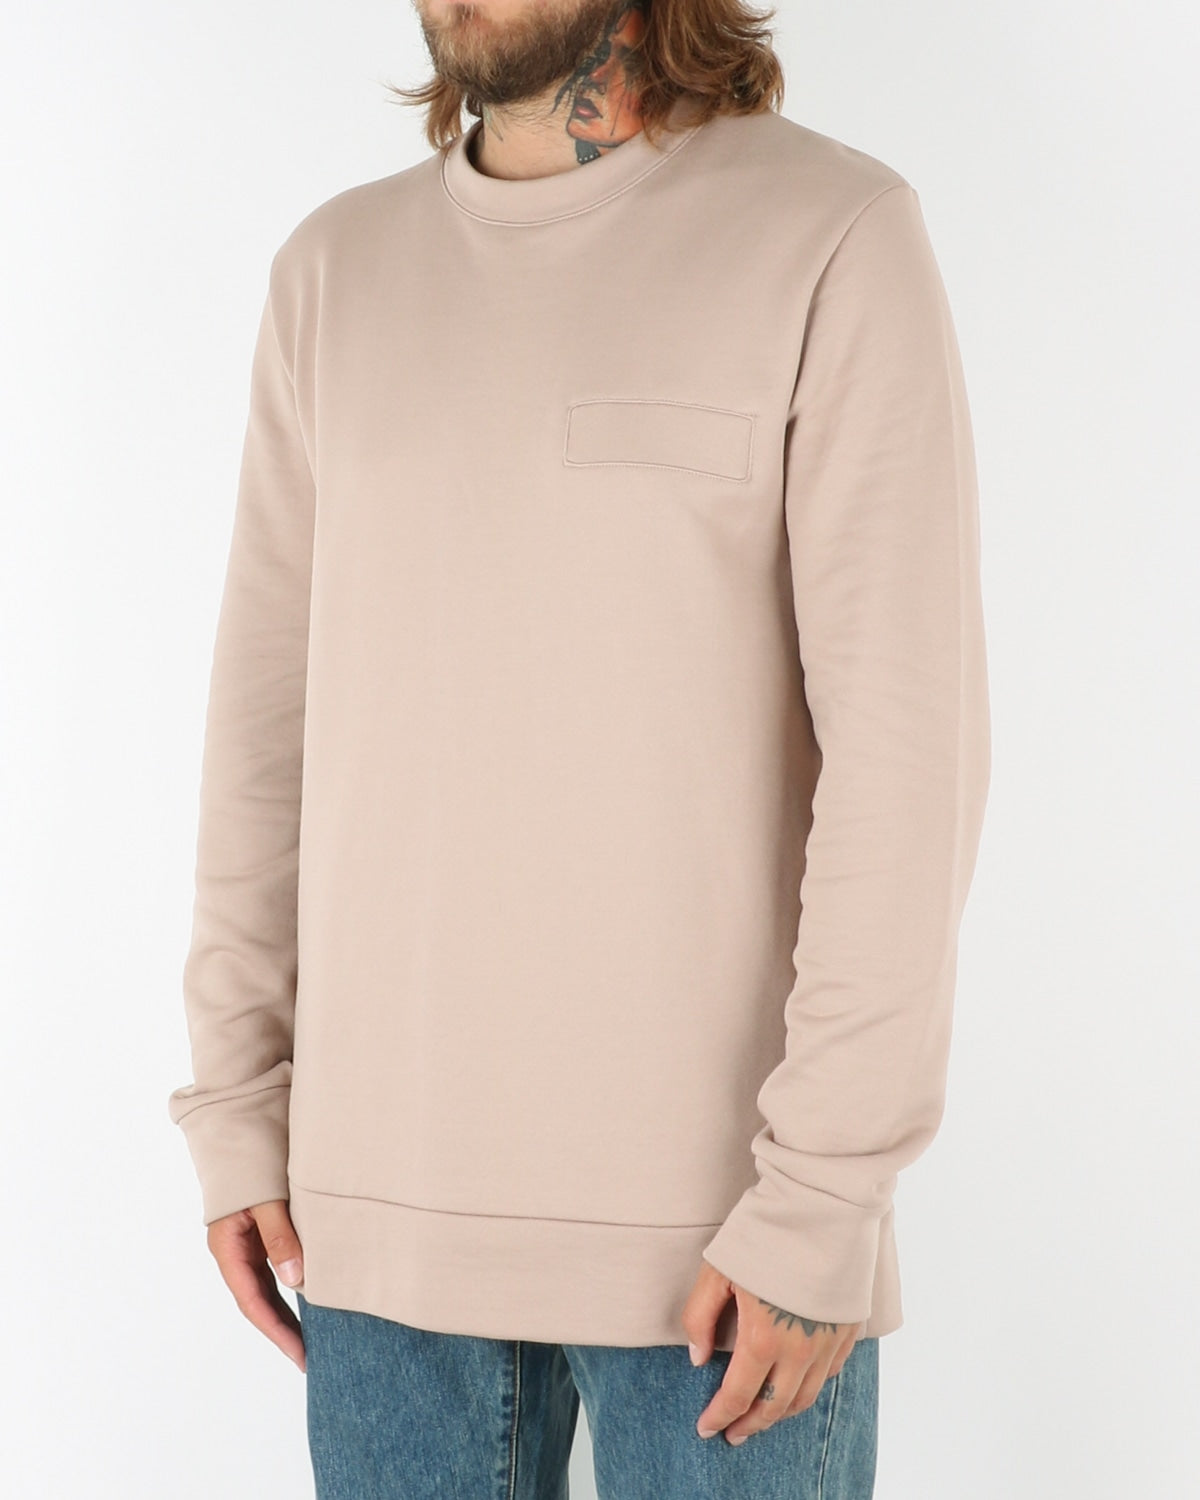 libertine libertine_east sweatshirt_nude_view_2_3